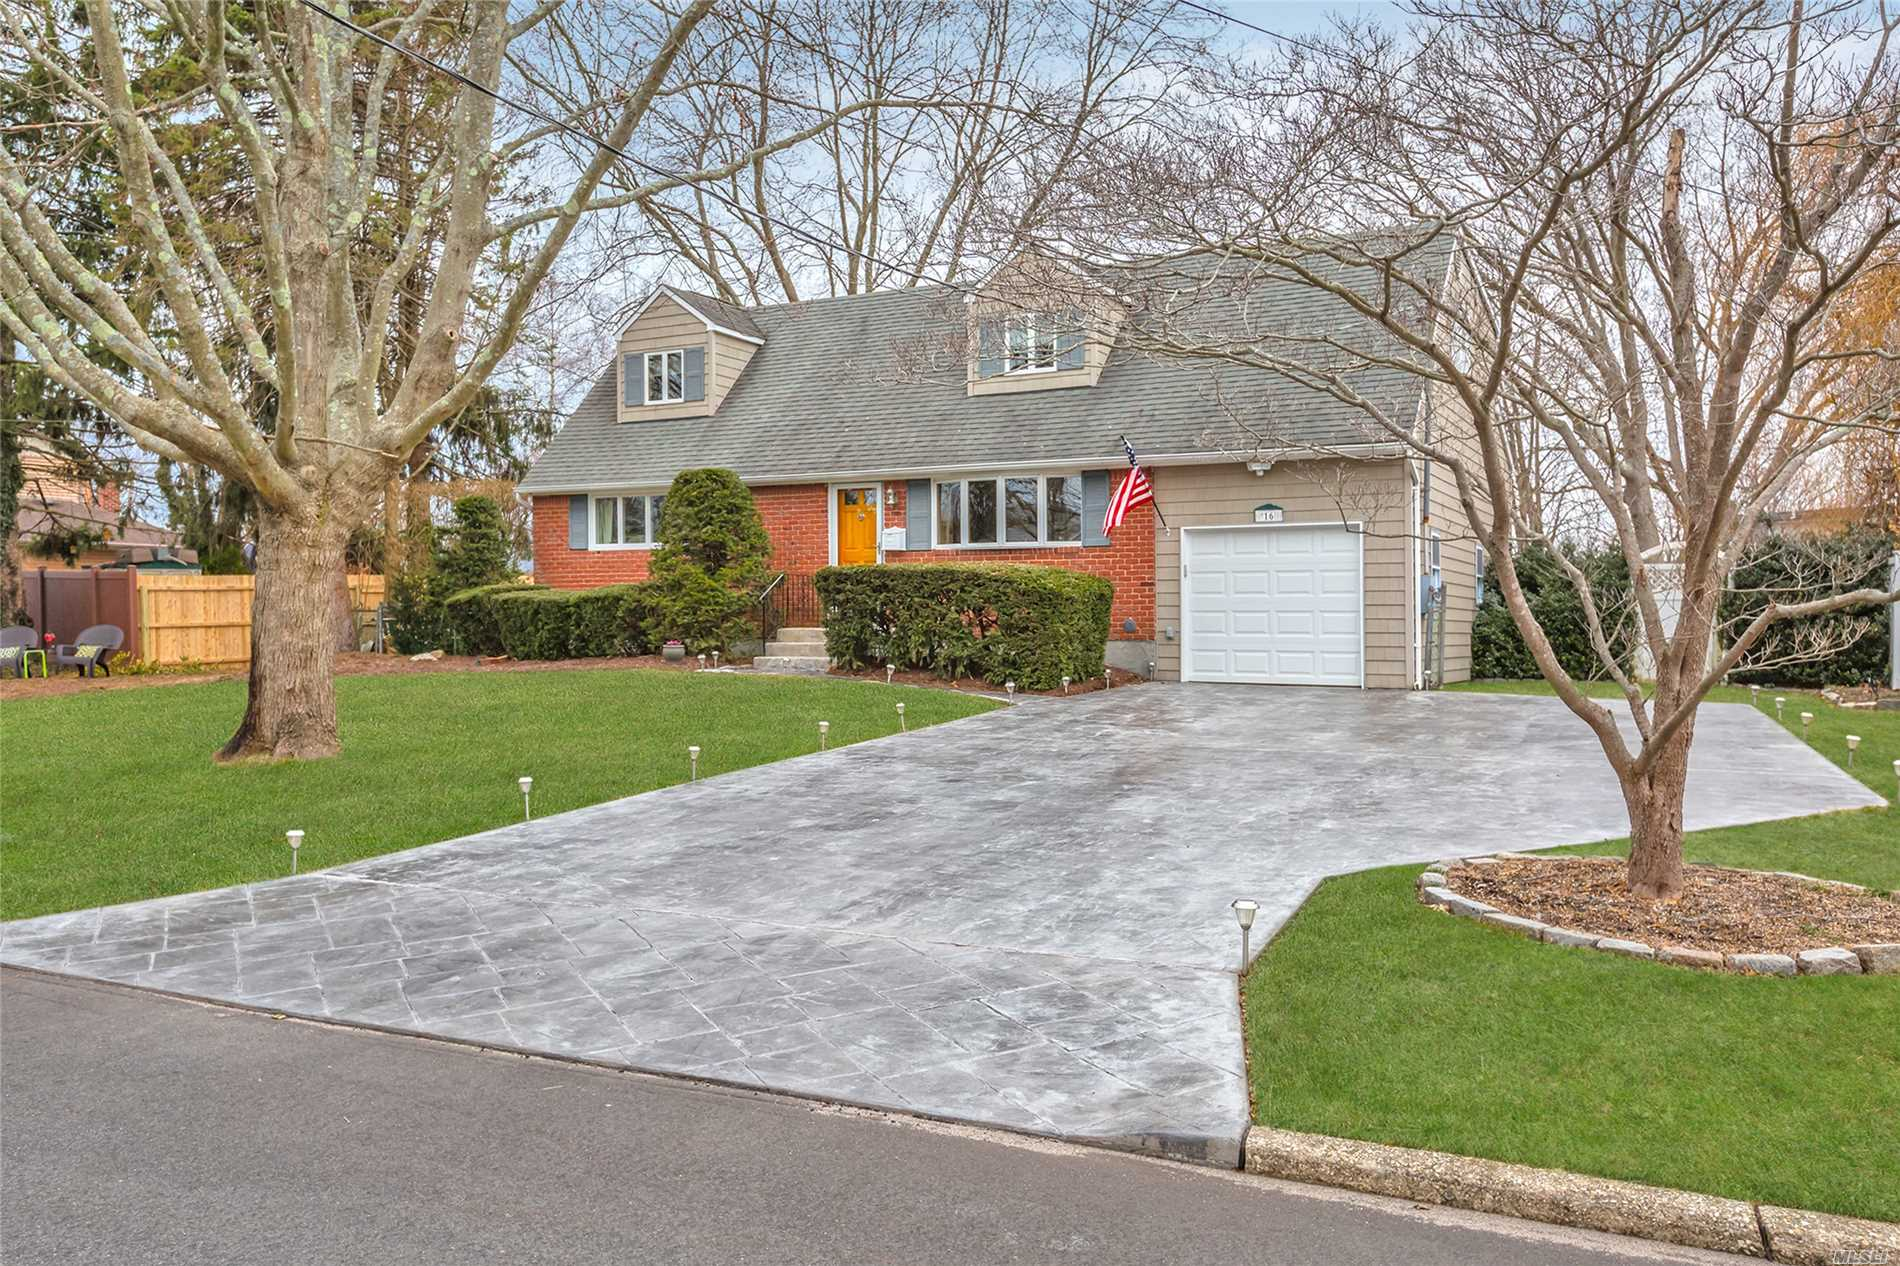 New To Market! Pretty 4 Bedroom, 3Bth Expanded Cape on Lovely Street. Nice Size Master Bedroom with a Private Bath. Central Air Conditioning. Great Kitchen with Island, Rich Cabinetry, Granite Counter-Tops And Oversized Sliding Doors to Sun Deck Overlooking Private Big Backyard. Attached Garage & Full Basement. Move In Condition! Won't Last, Don't Miss!